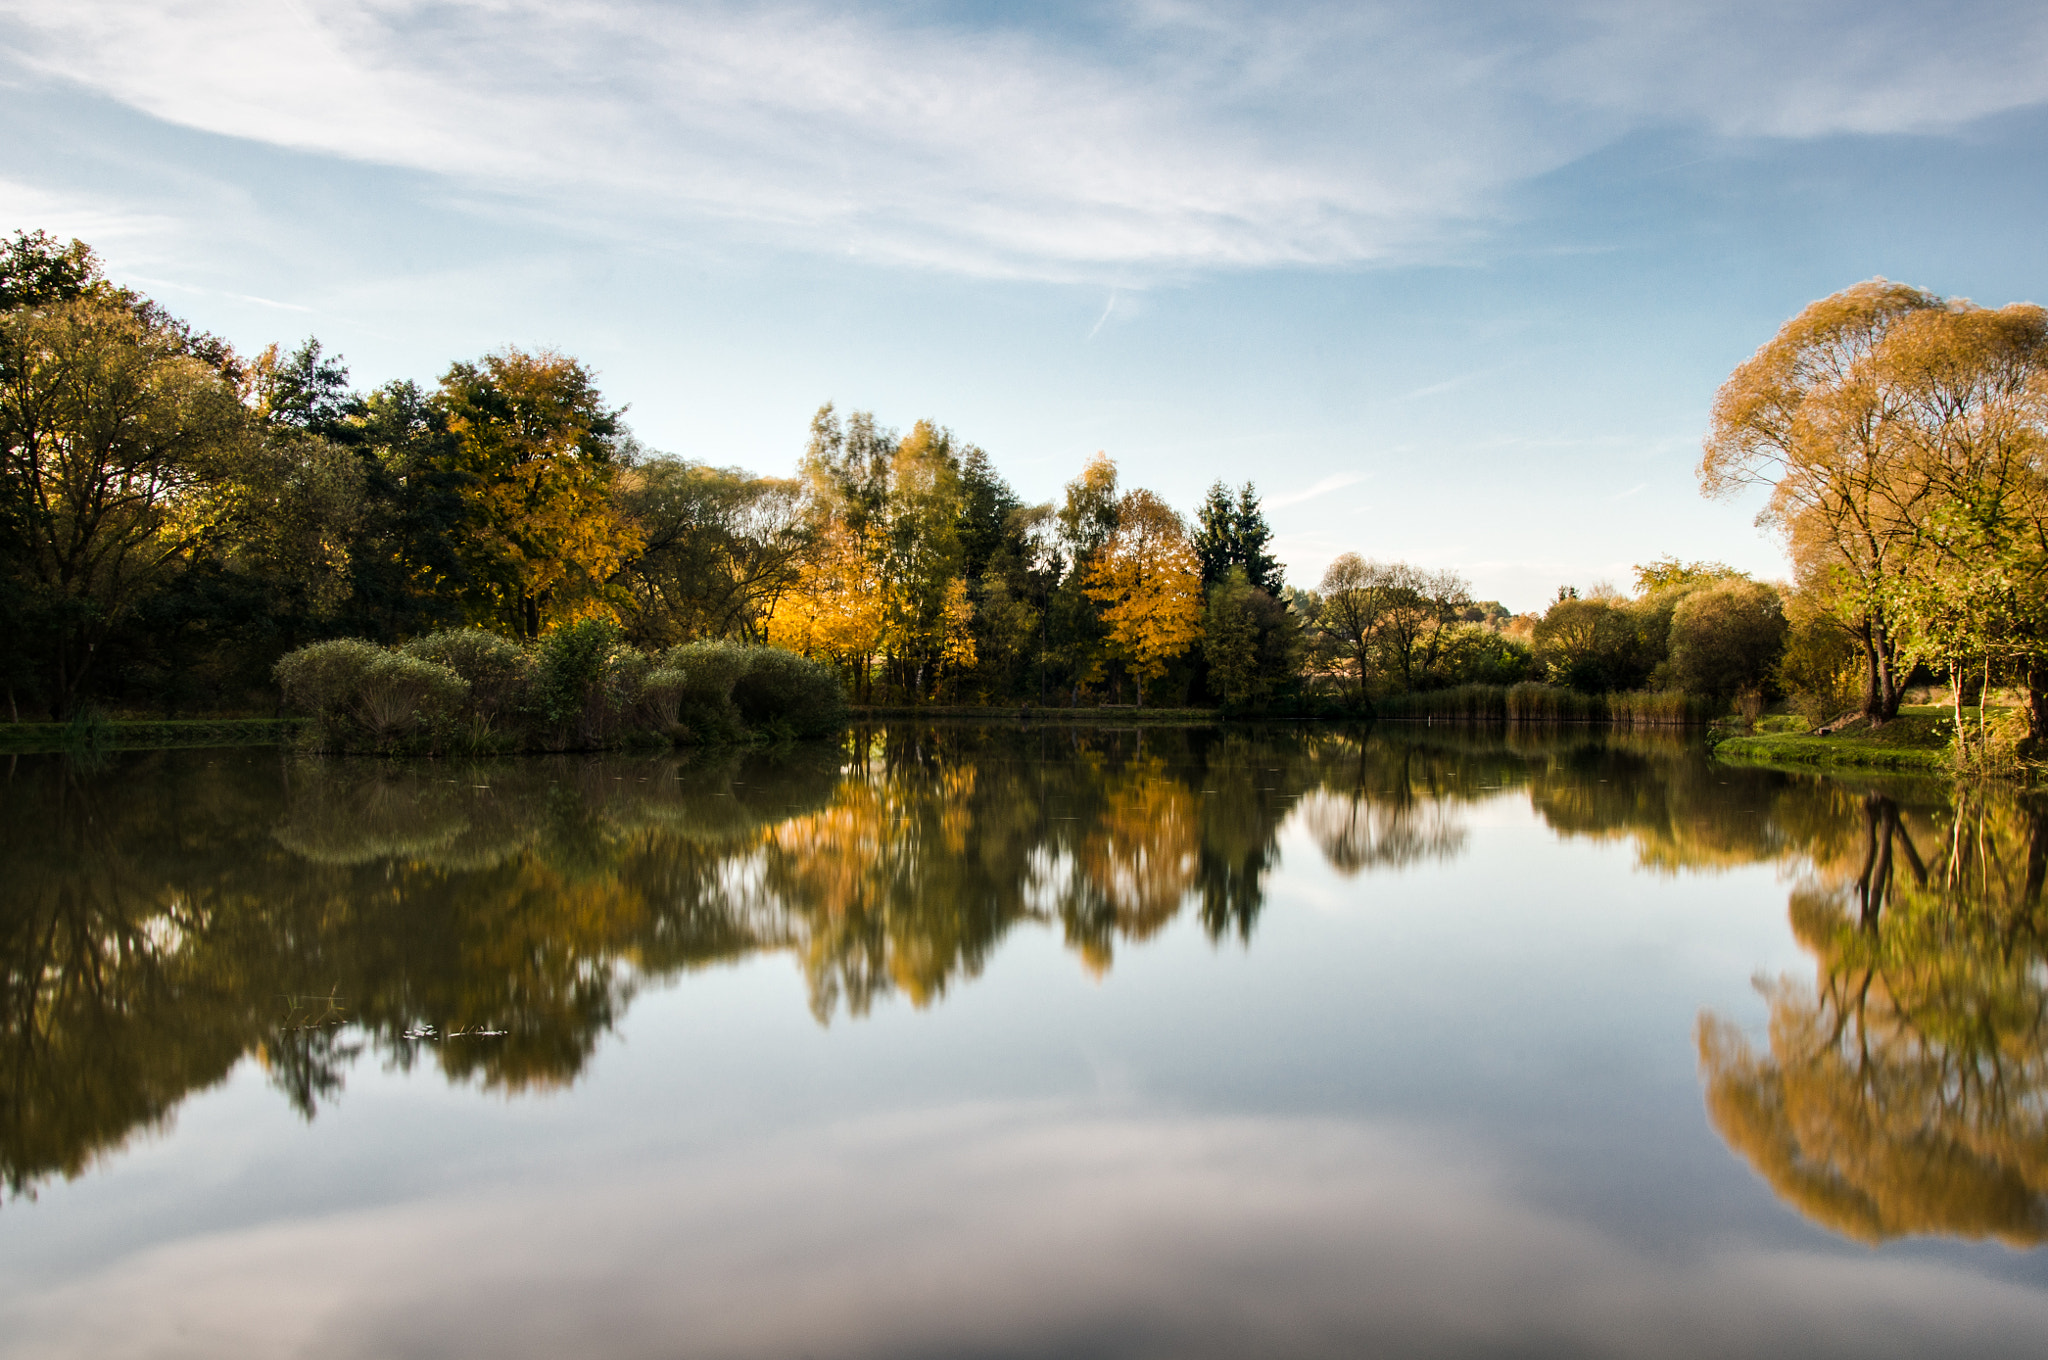 Photograph Autumn Reflections by Peter Sieling on 500px